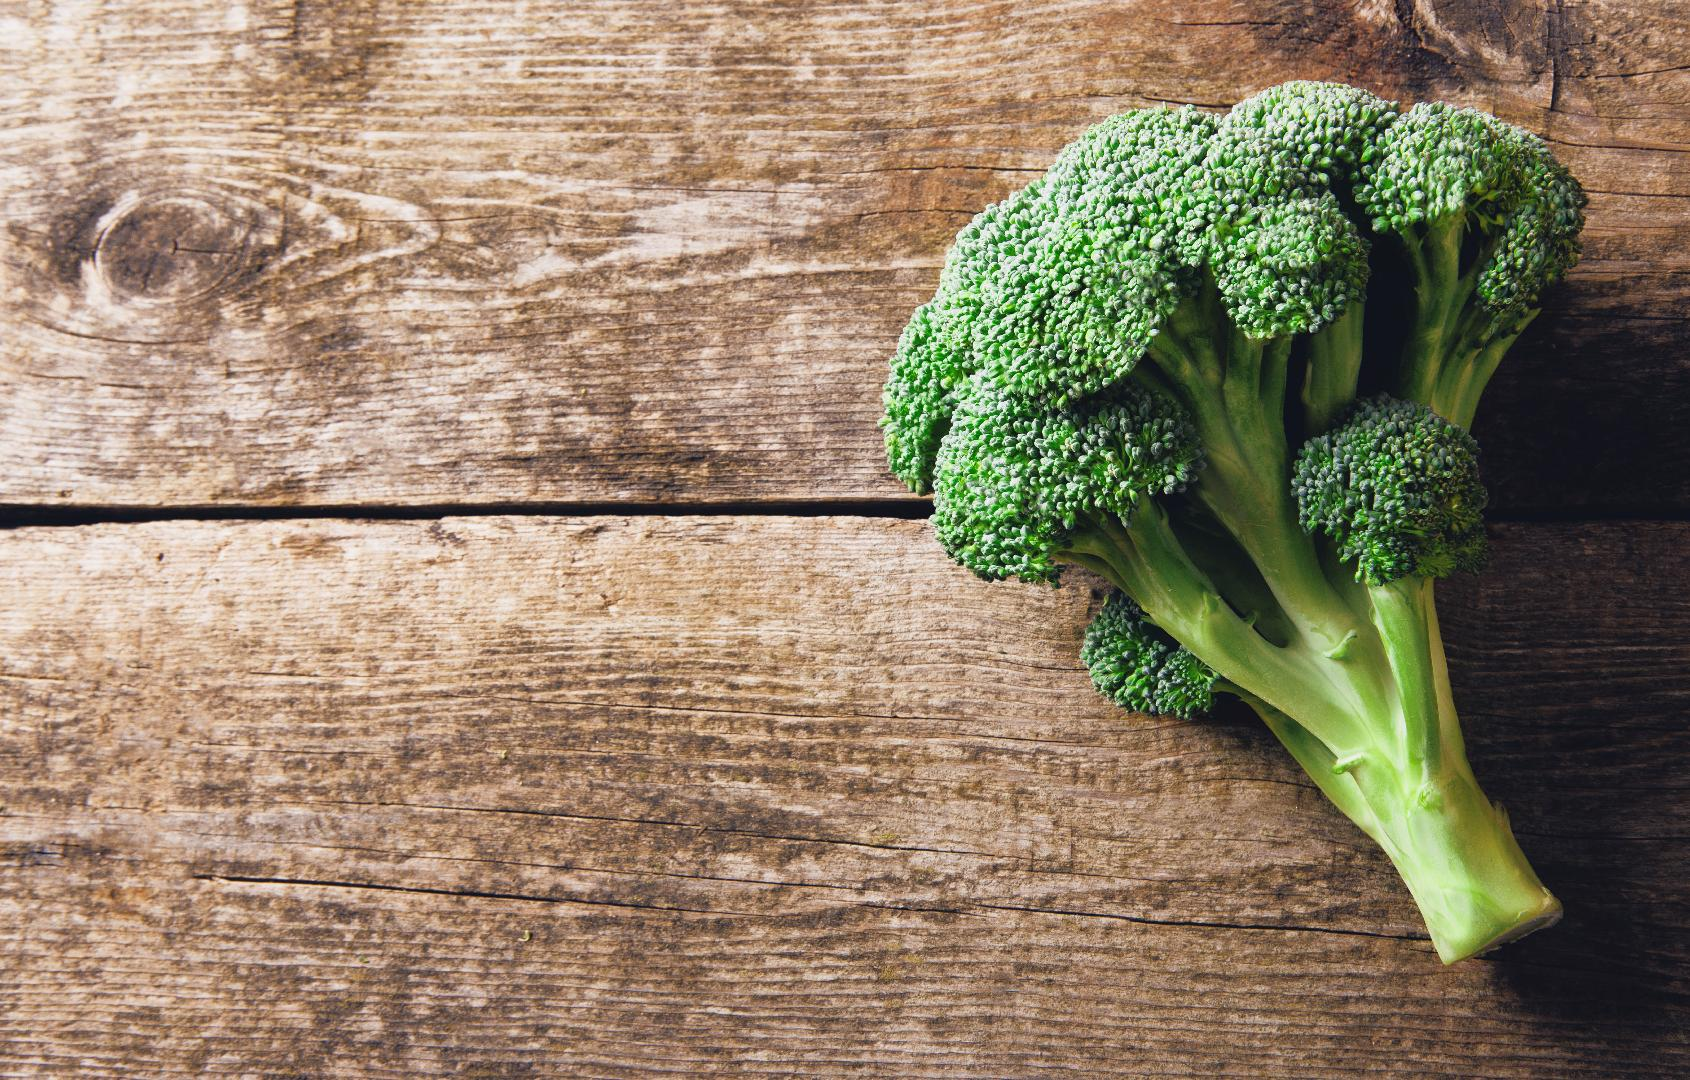 7 Tasty Foods With More Fiber Than a Cup of Broccoli